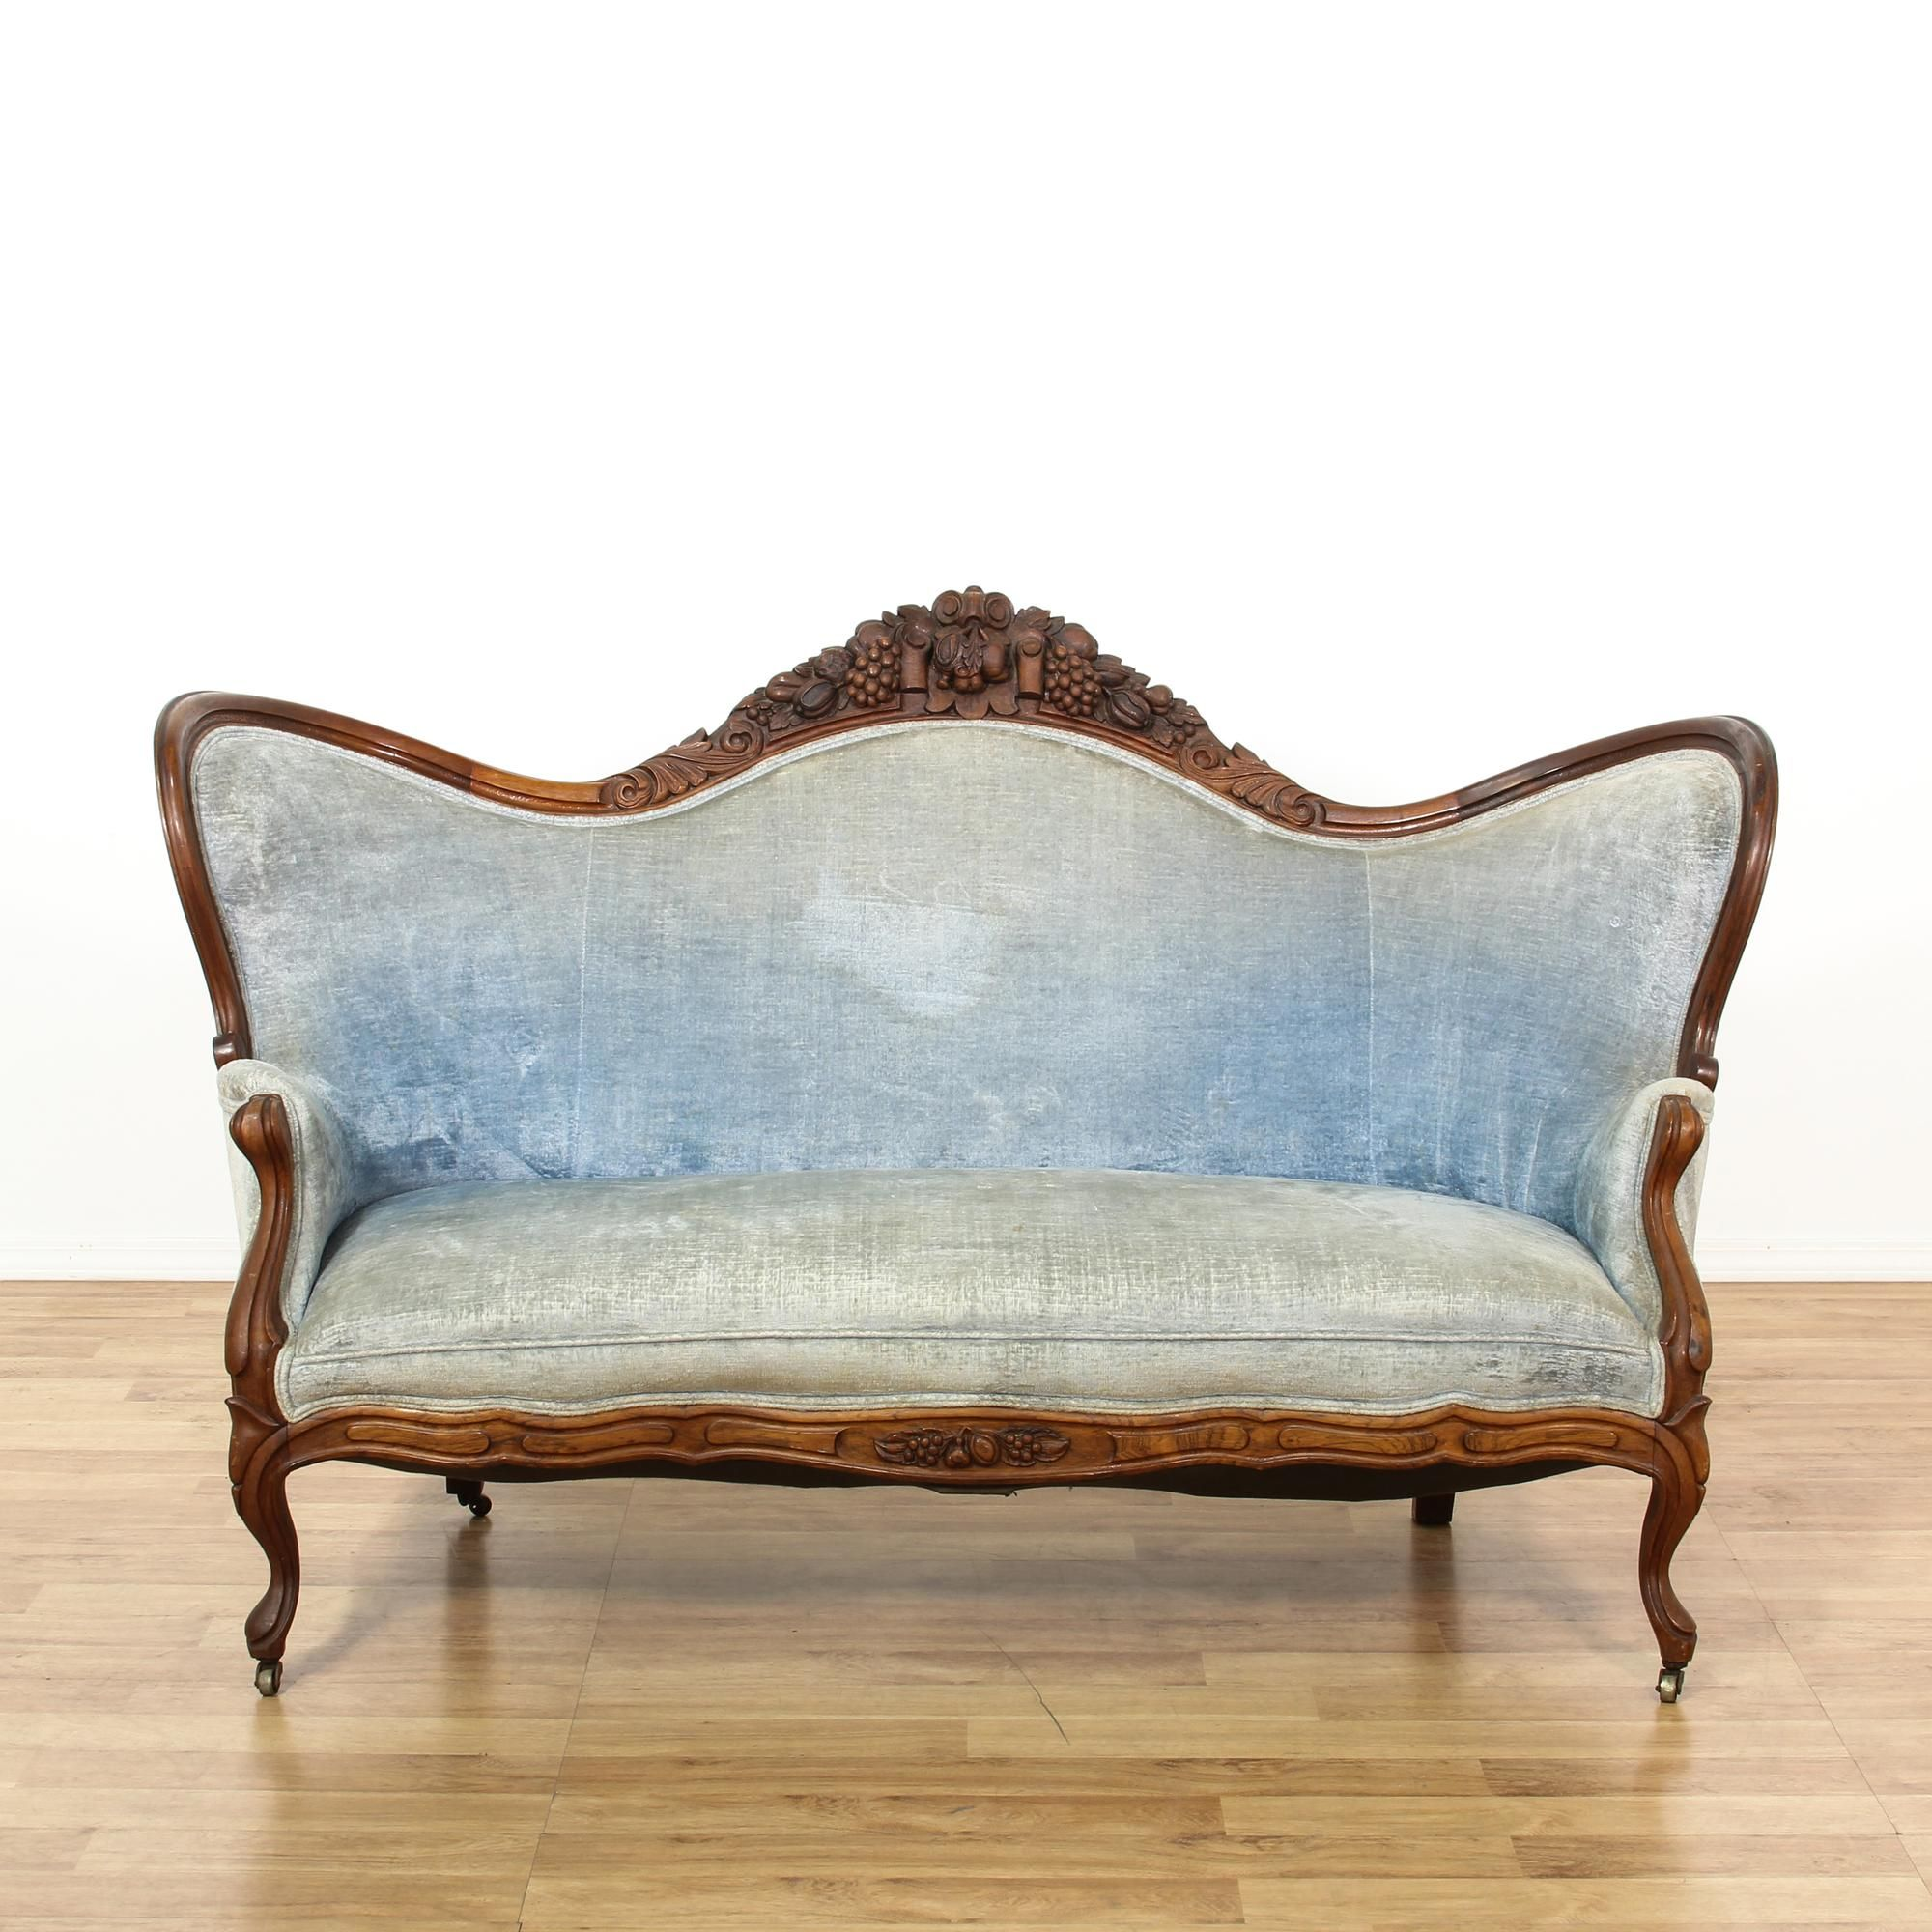 This belter victorian style settee is featured in a solid wood